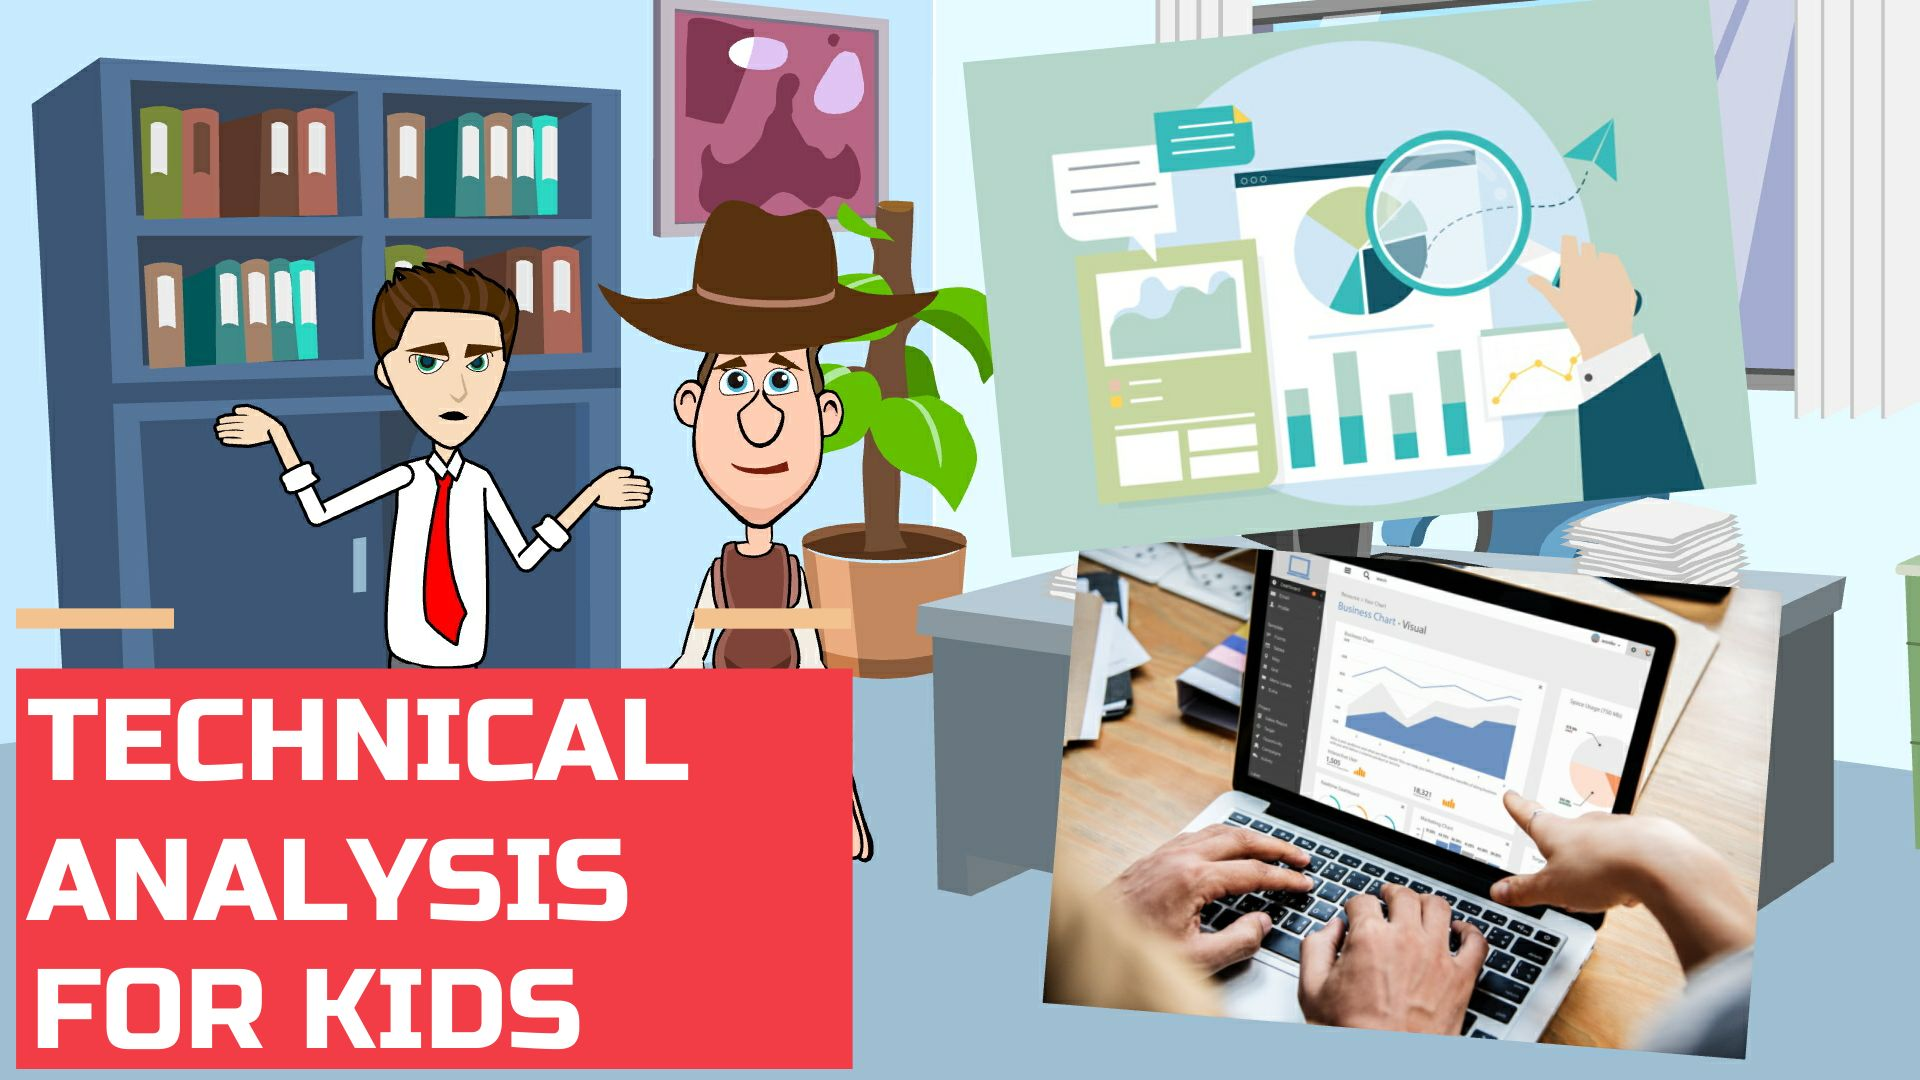 Technical Analysis for Kids